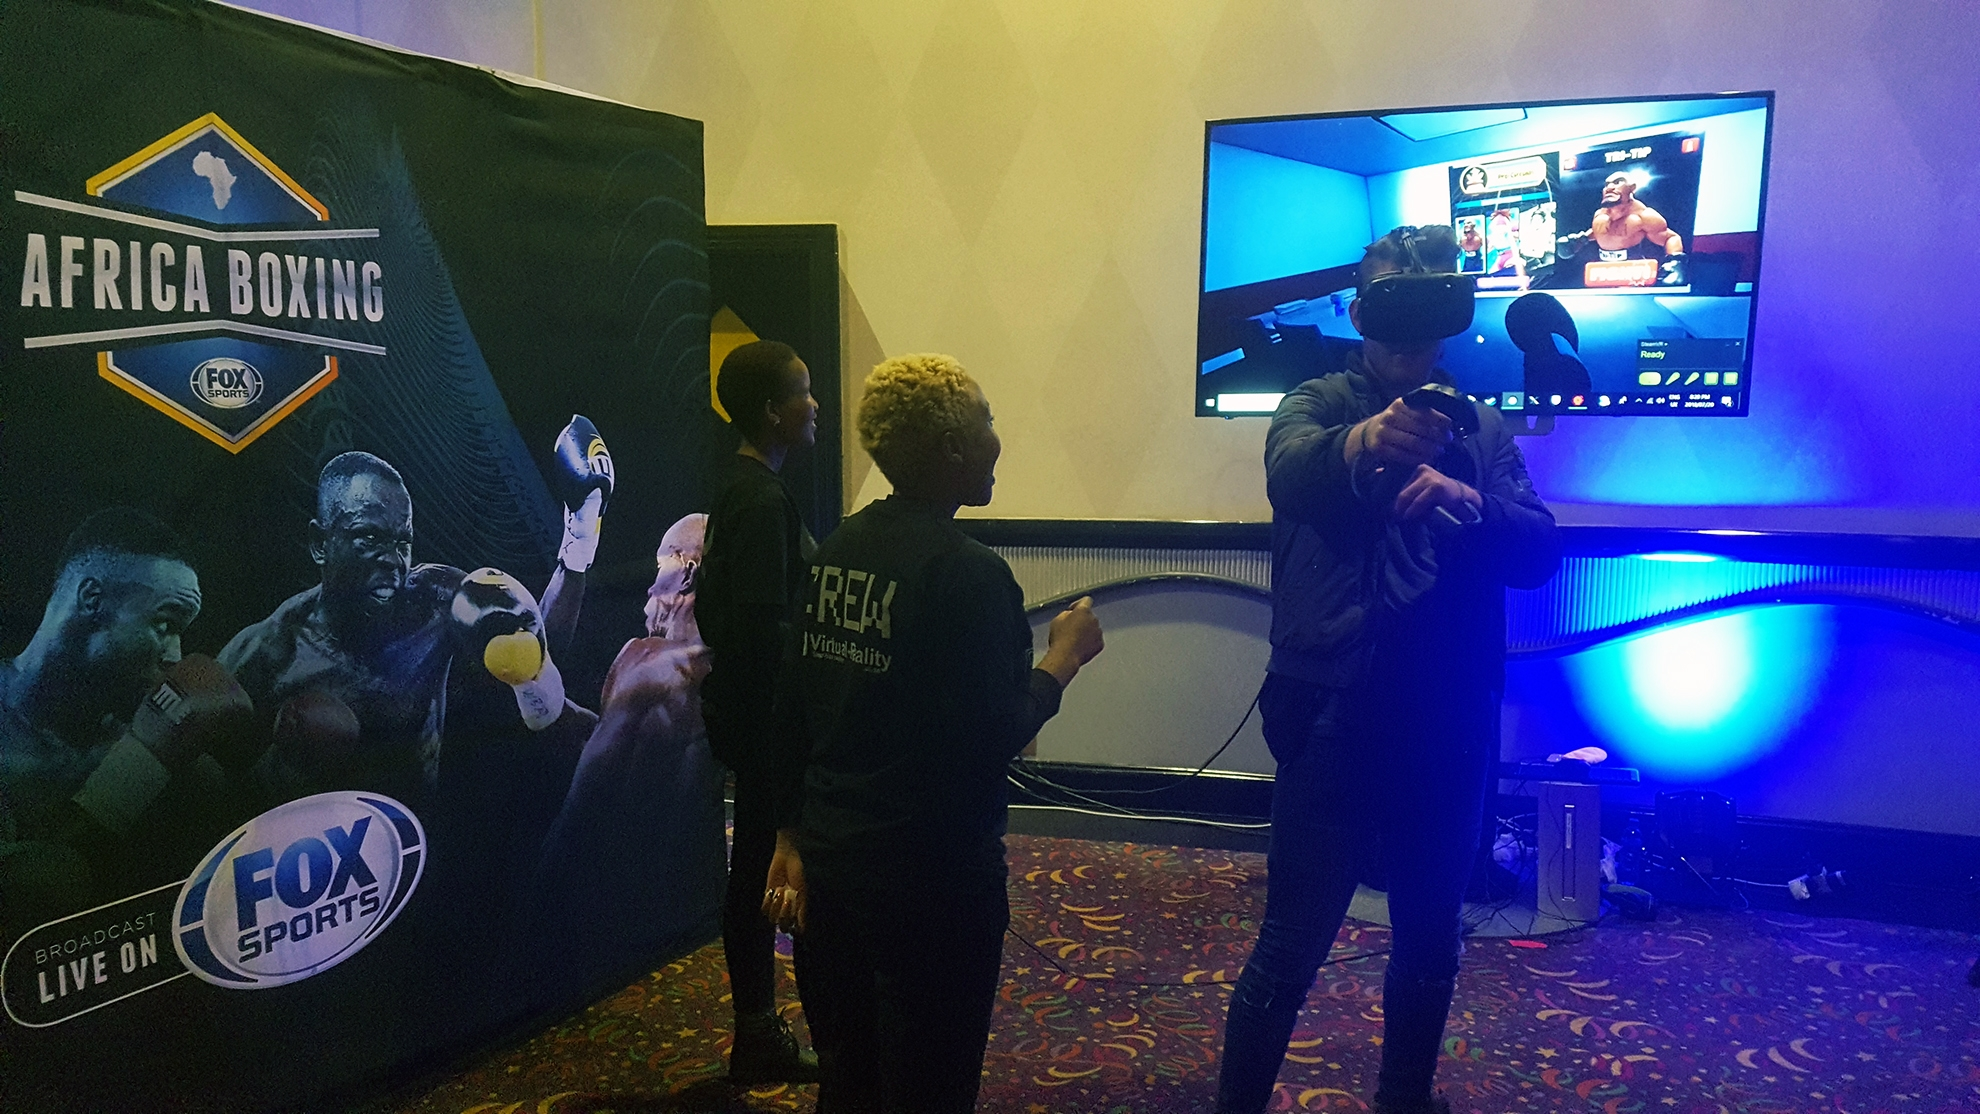 vr-event-spesialist-south-africa